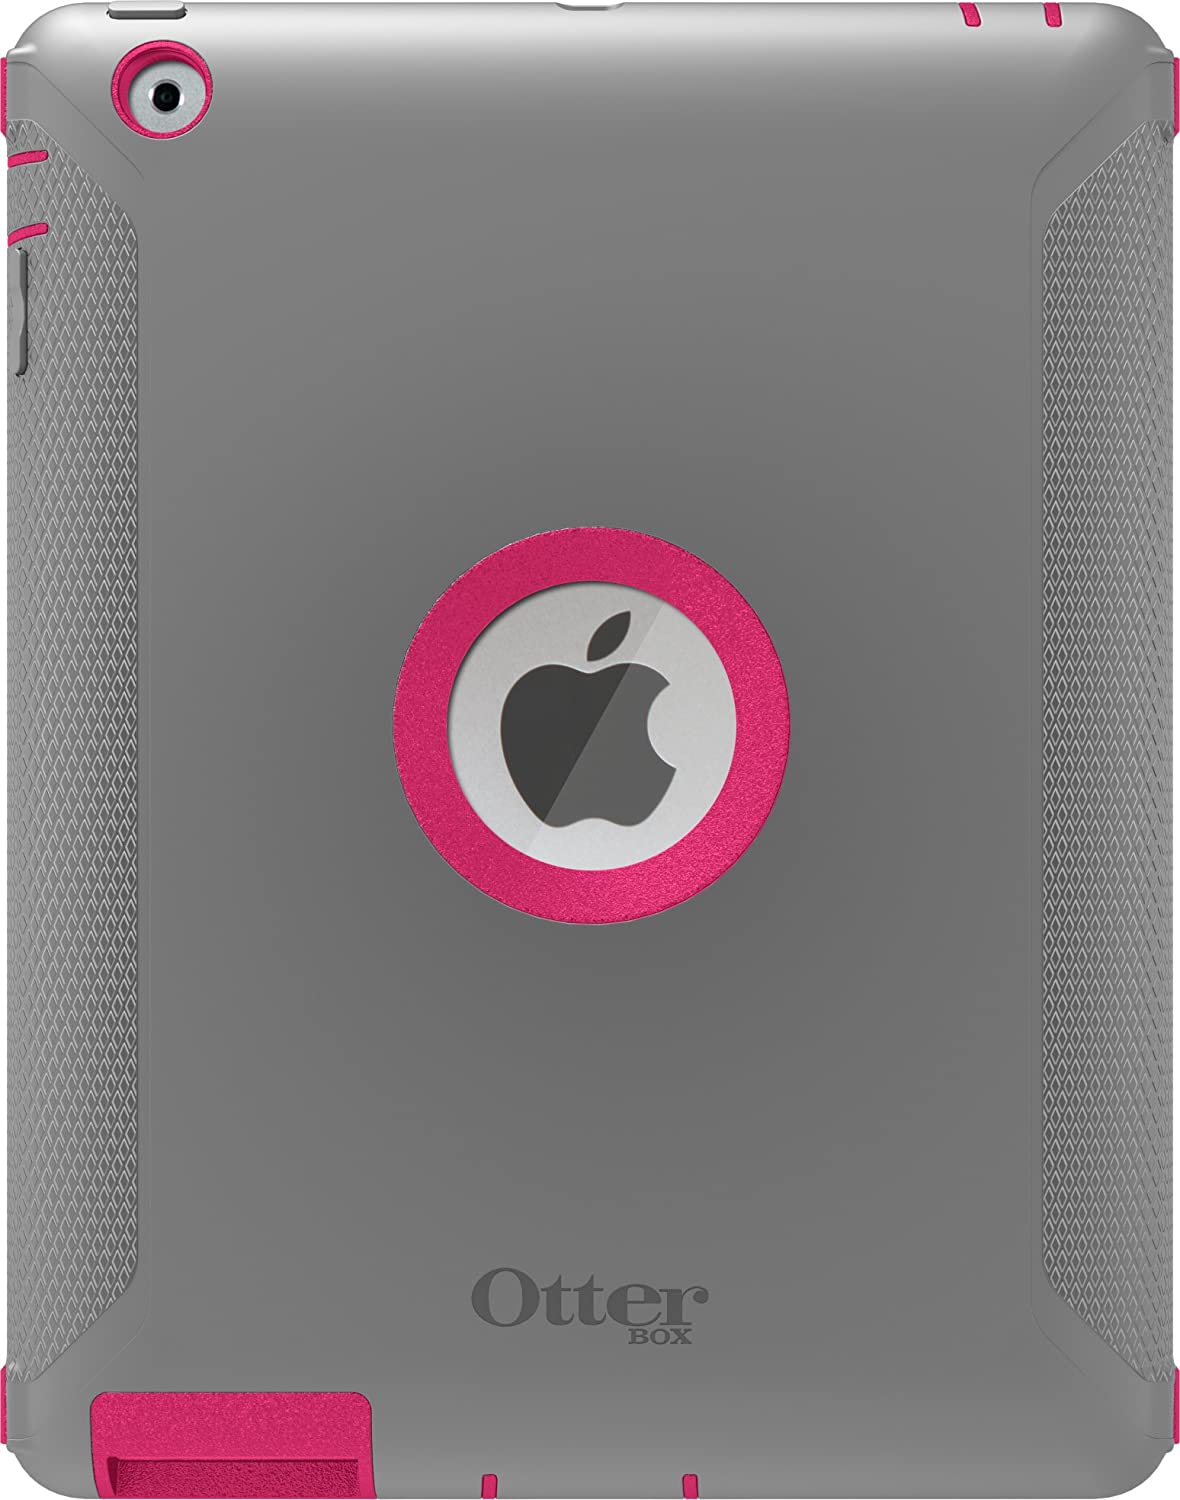 OtterBox Defender Packaging 77 18640 compatible Image 2